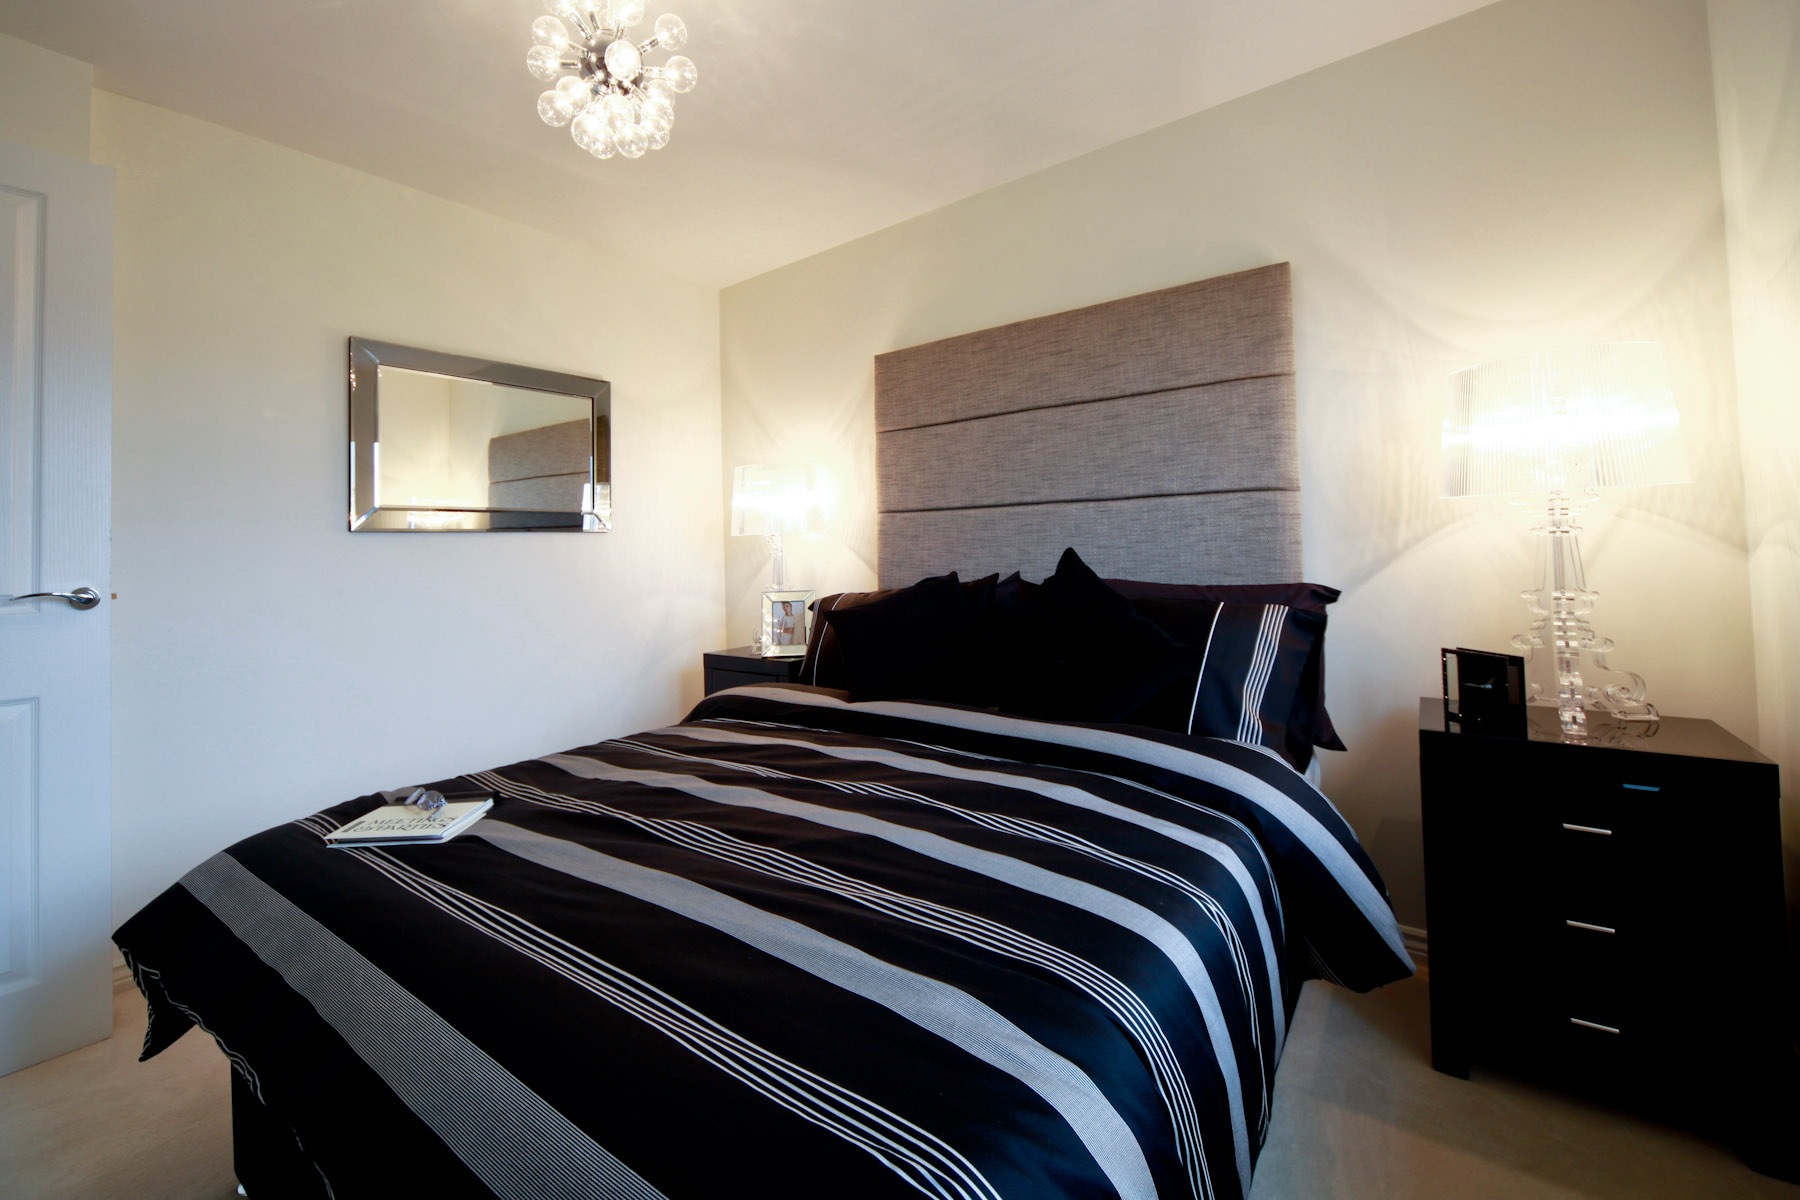 north-east-crofton-grange-grasmere-14-bed-2